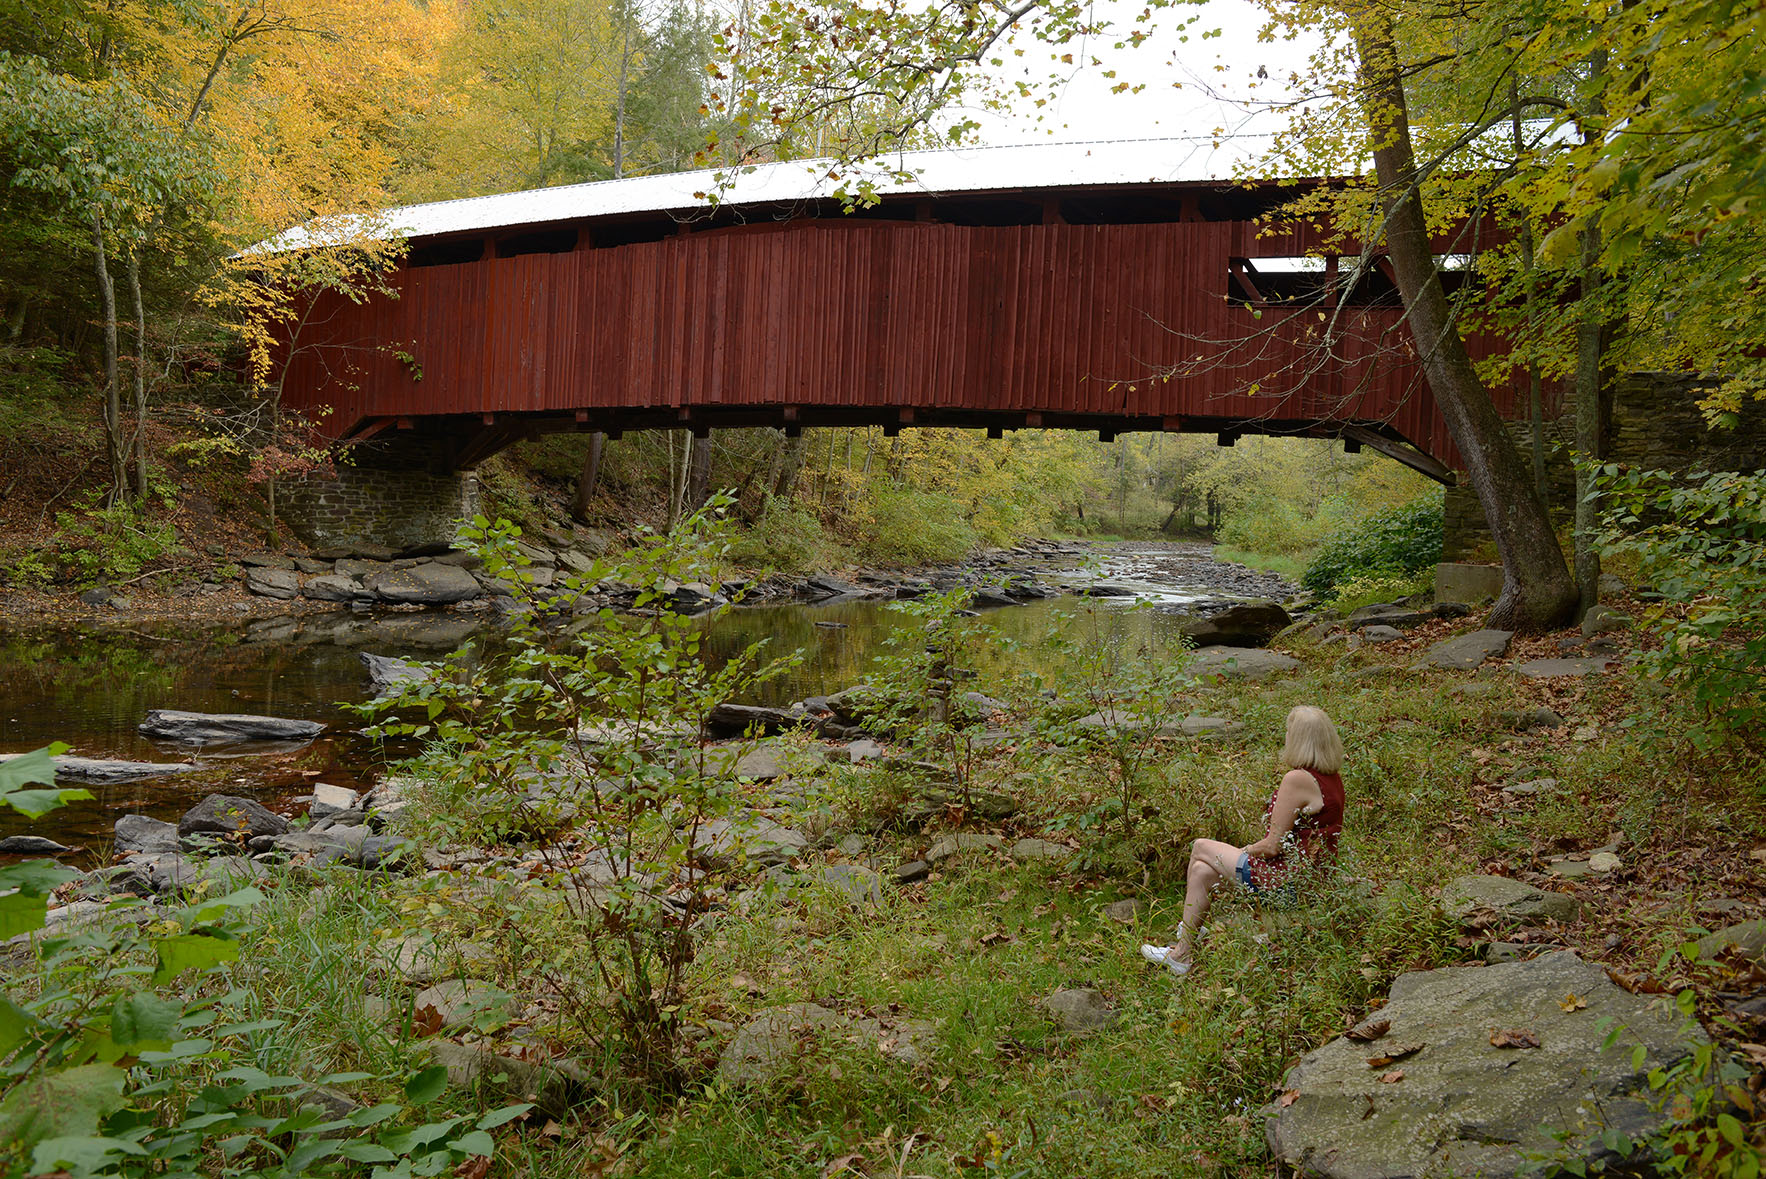 A covered bridge date